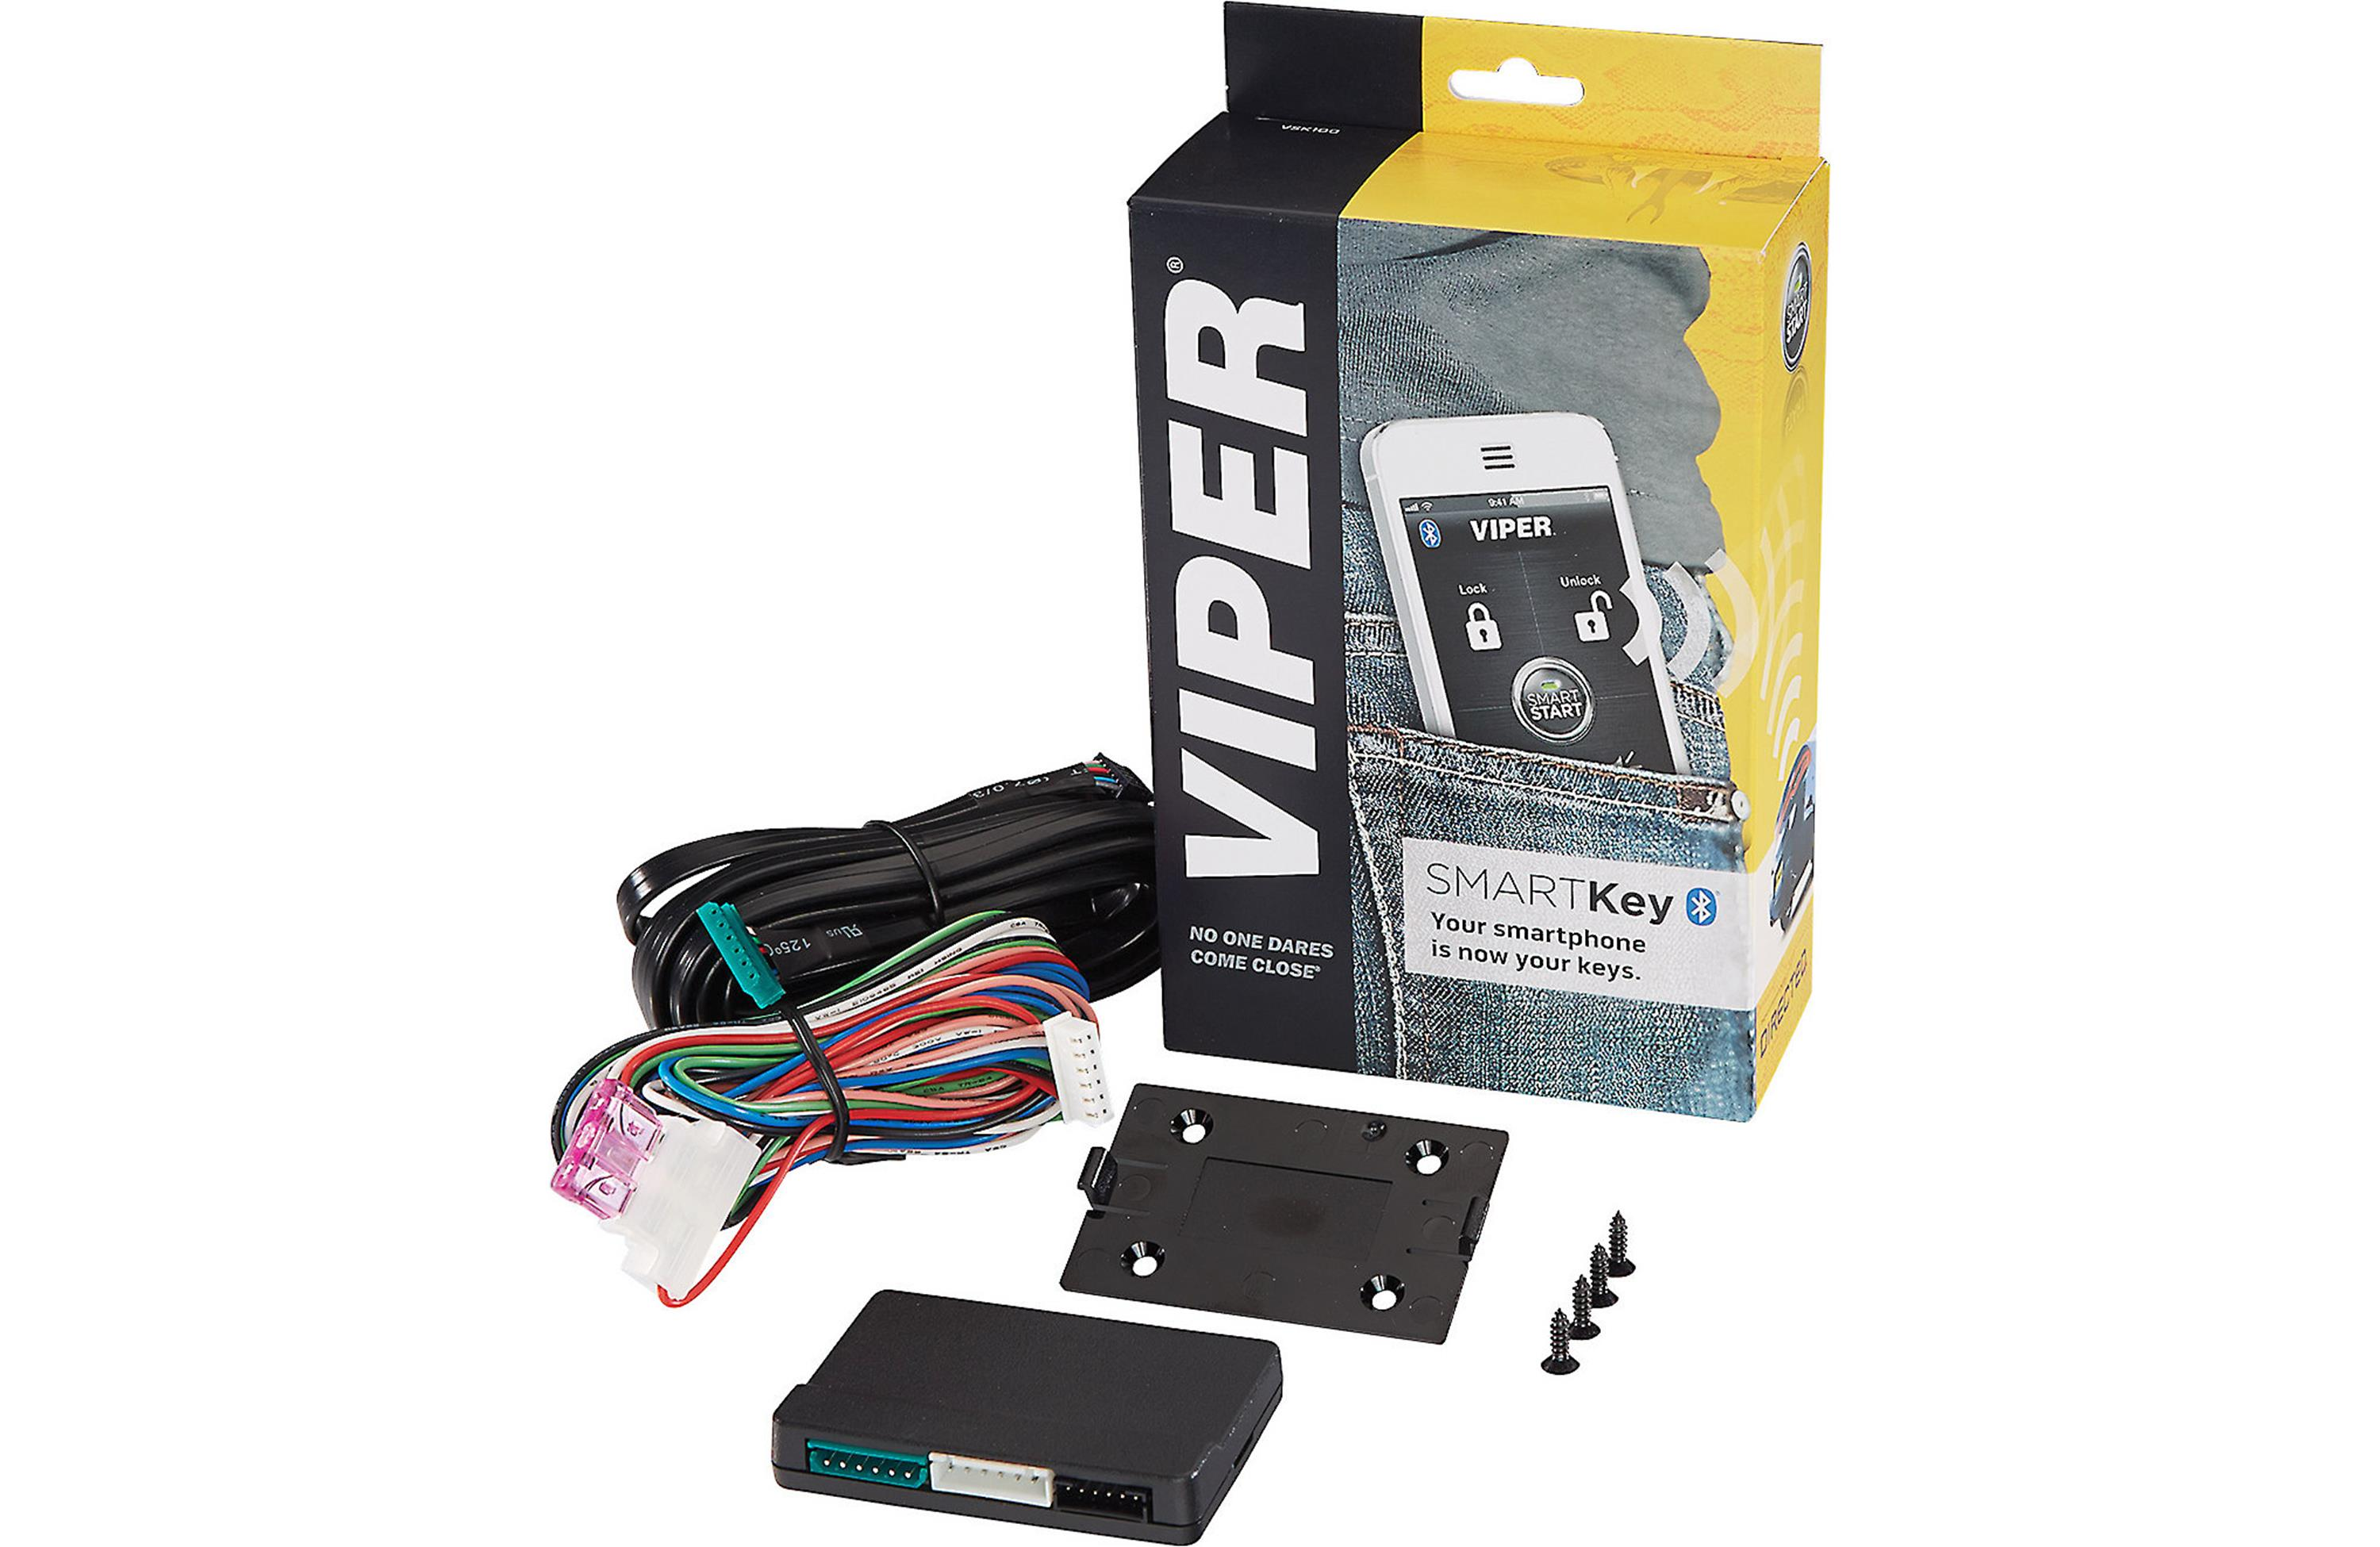 Viper VSK100 SmartKey Bluetooth Module Connects your smartphone to your car security remote start system